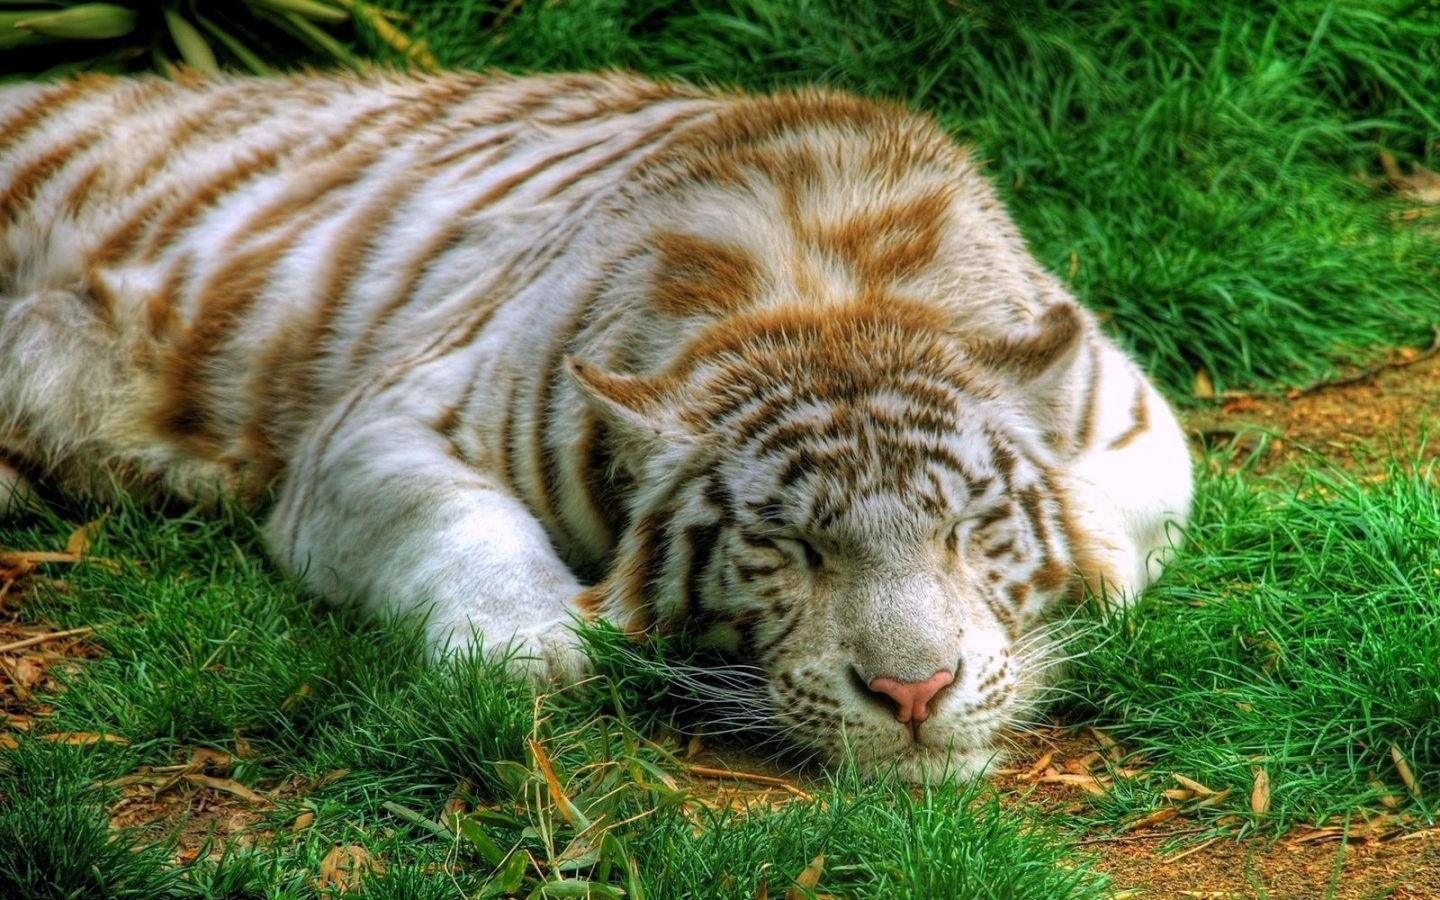 40831 download wallpaper Animals, Tigers screensavers and pictures for free